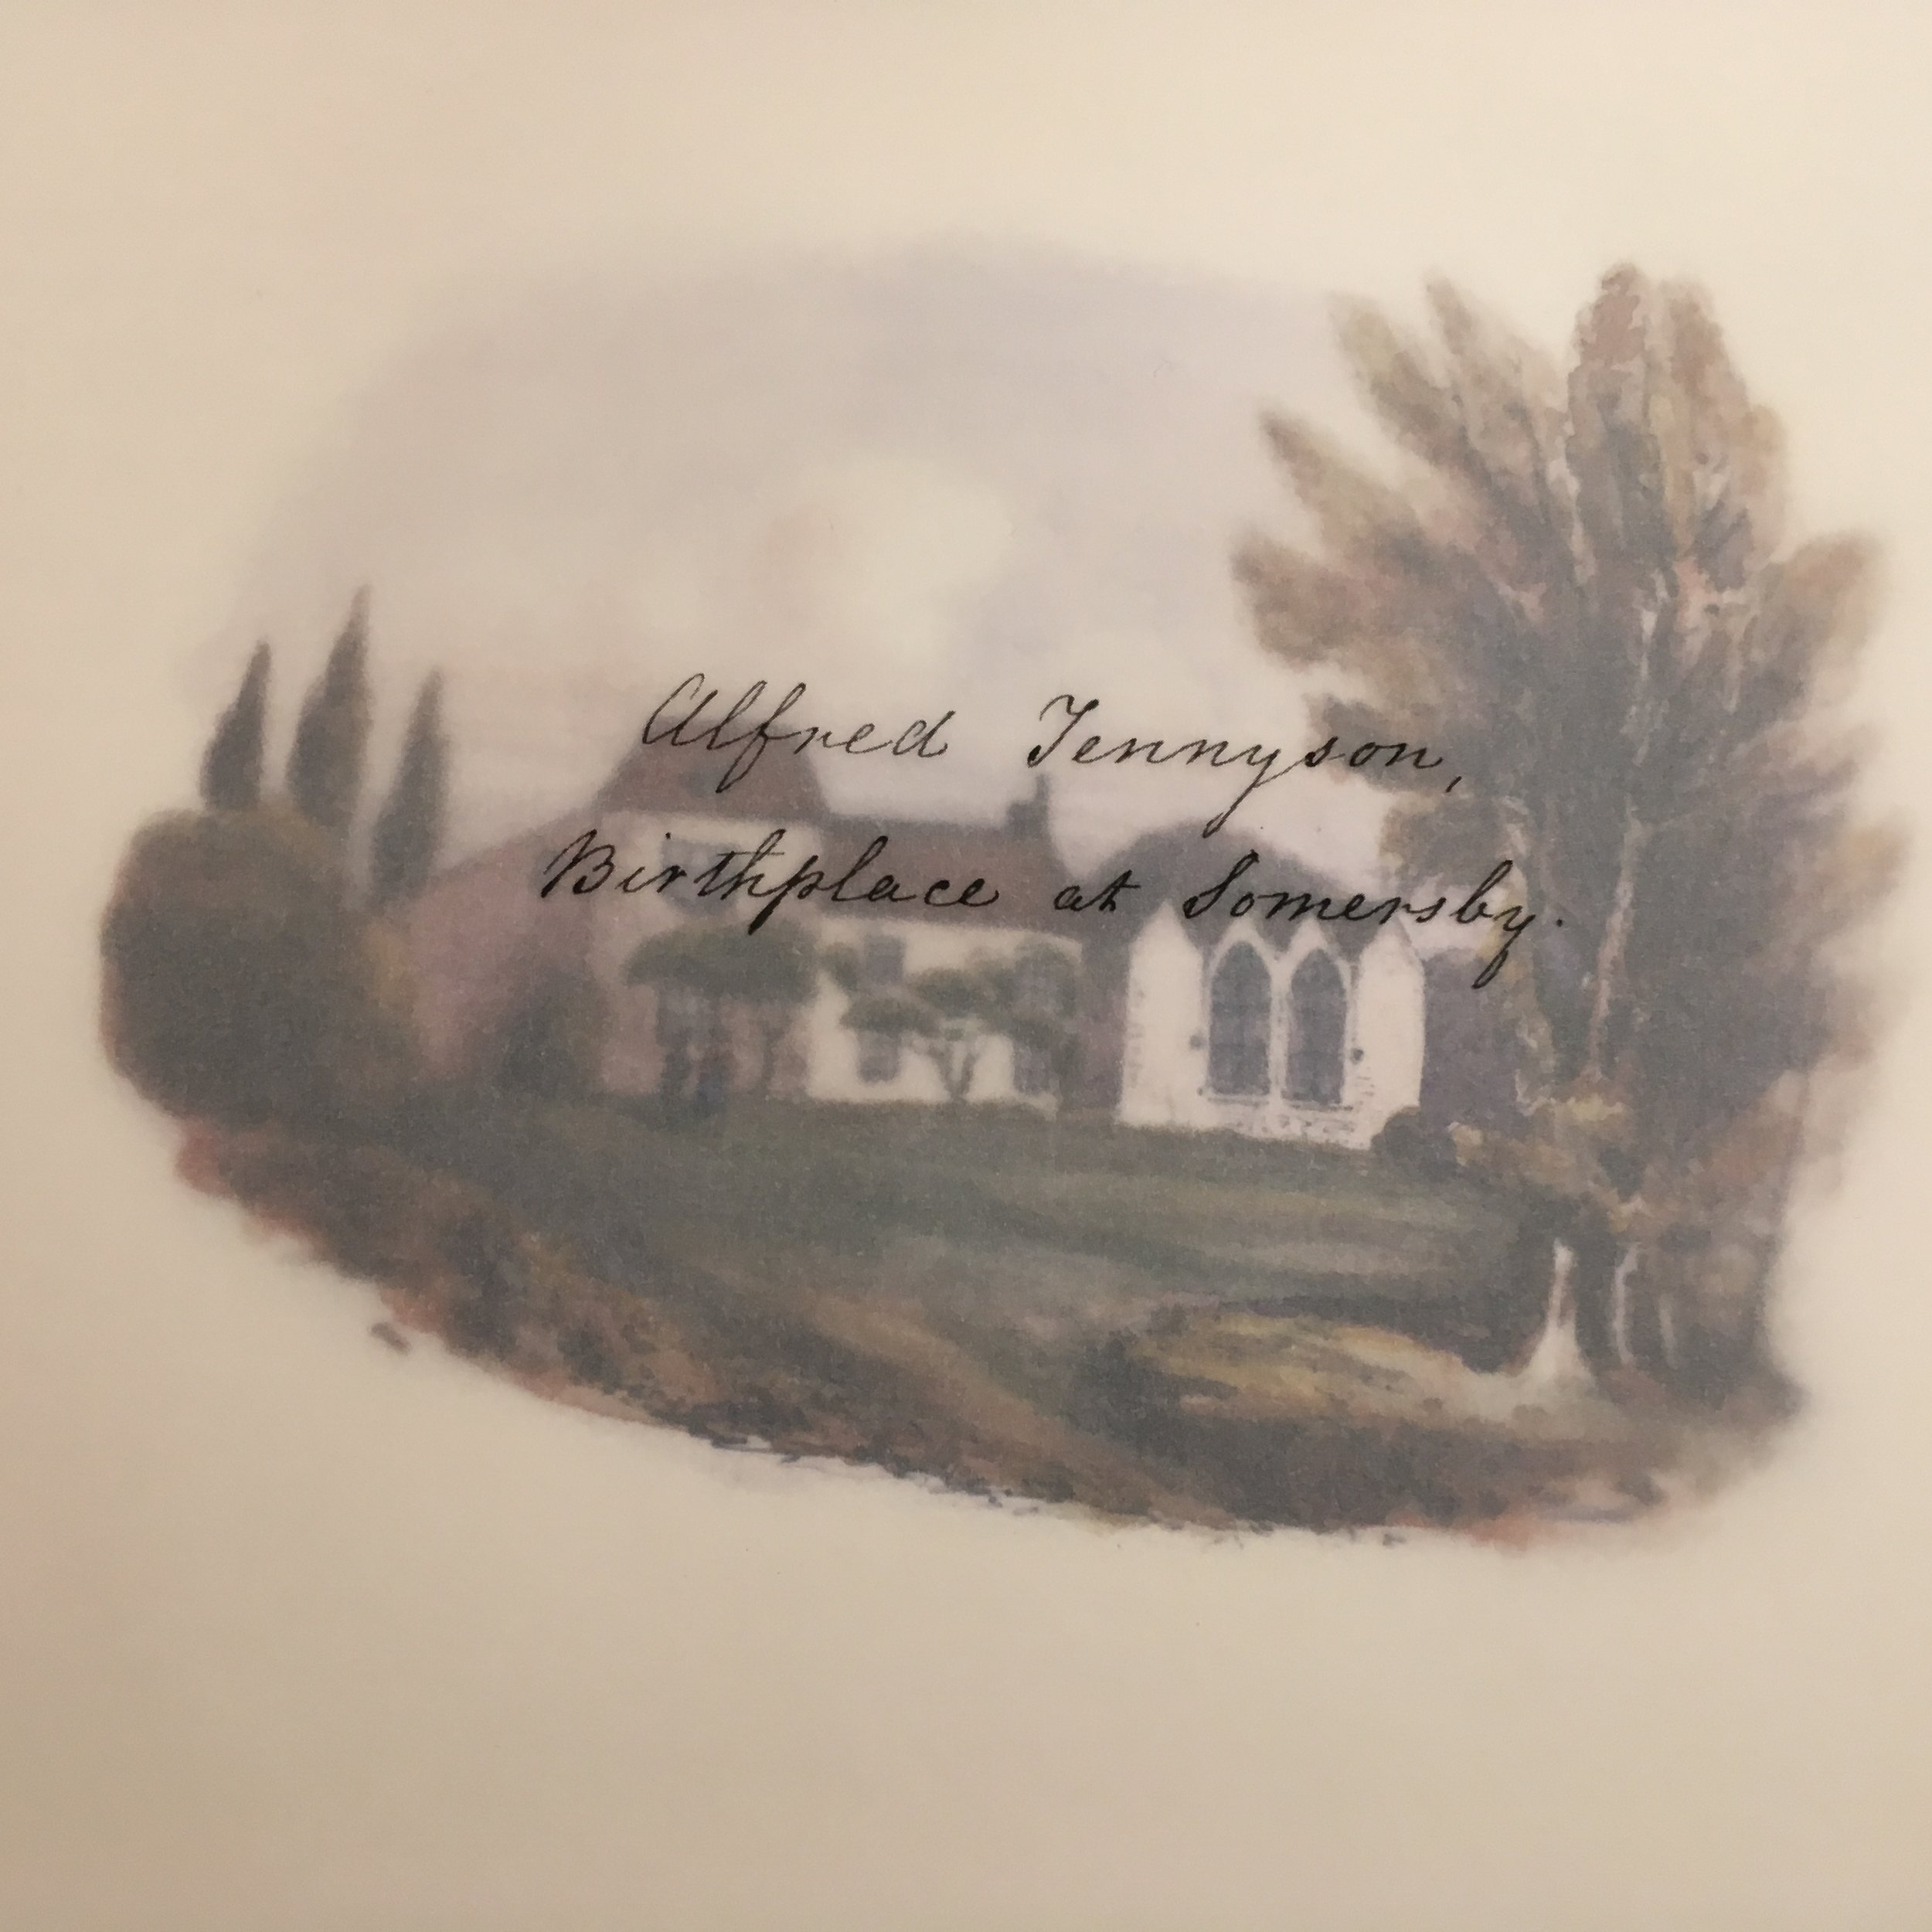 Alfred Tennyson Birthplace at Somersby..JPG